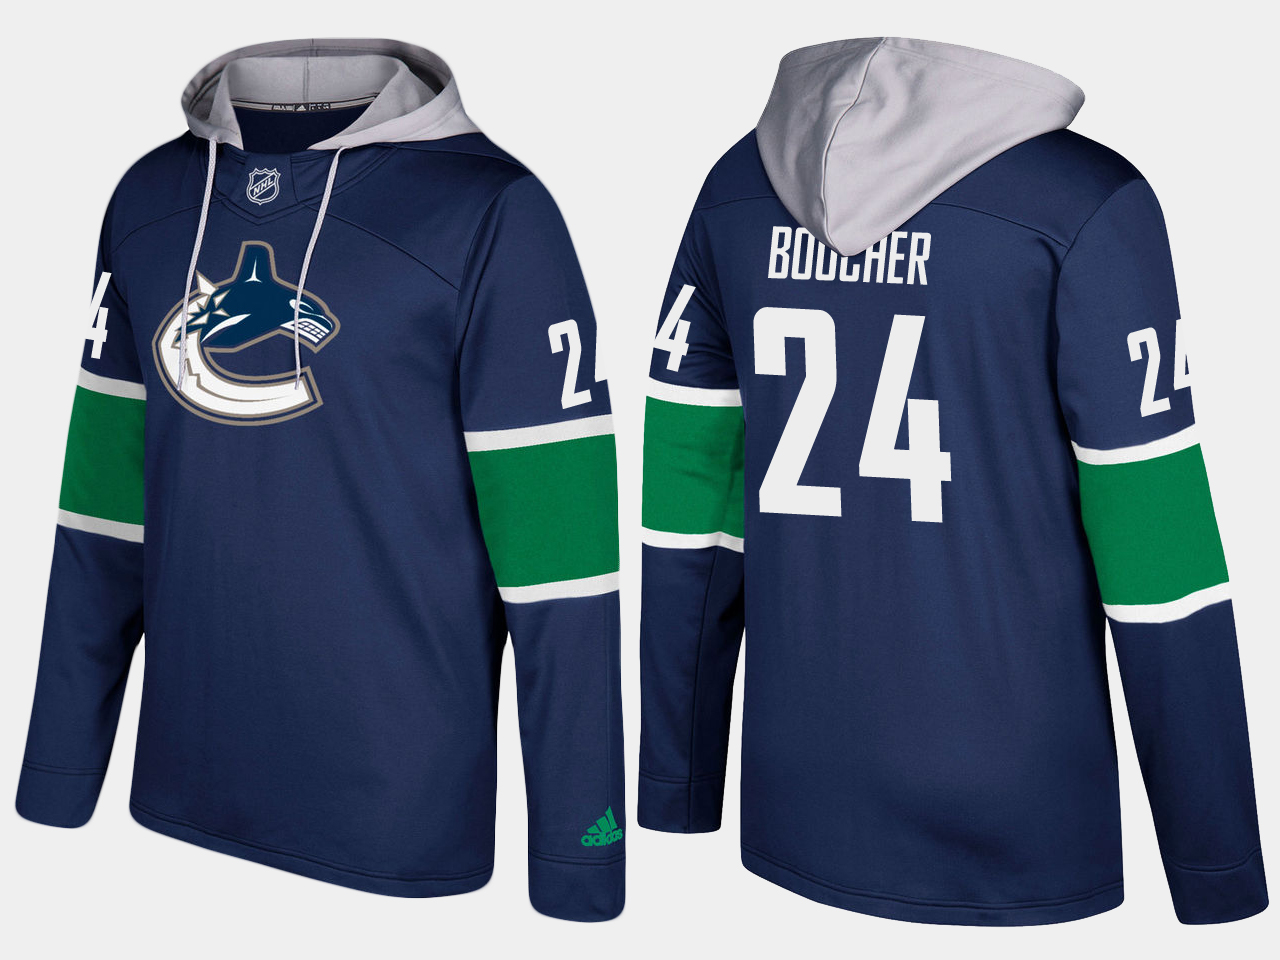 Canucks #24 Reid Boucher Blue Name And Number Hoodie